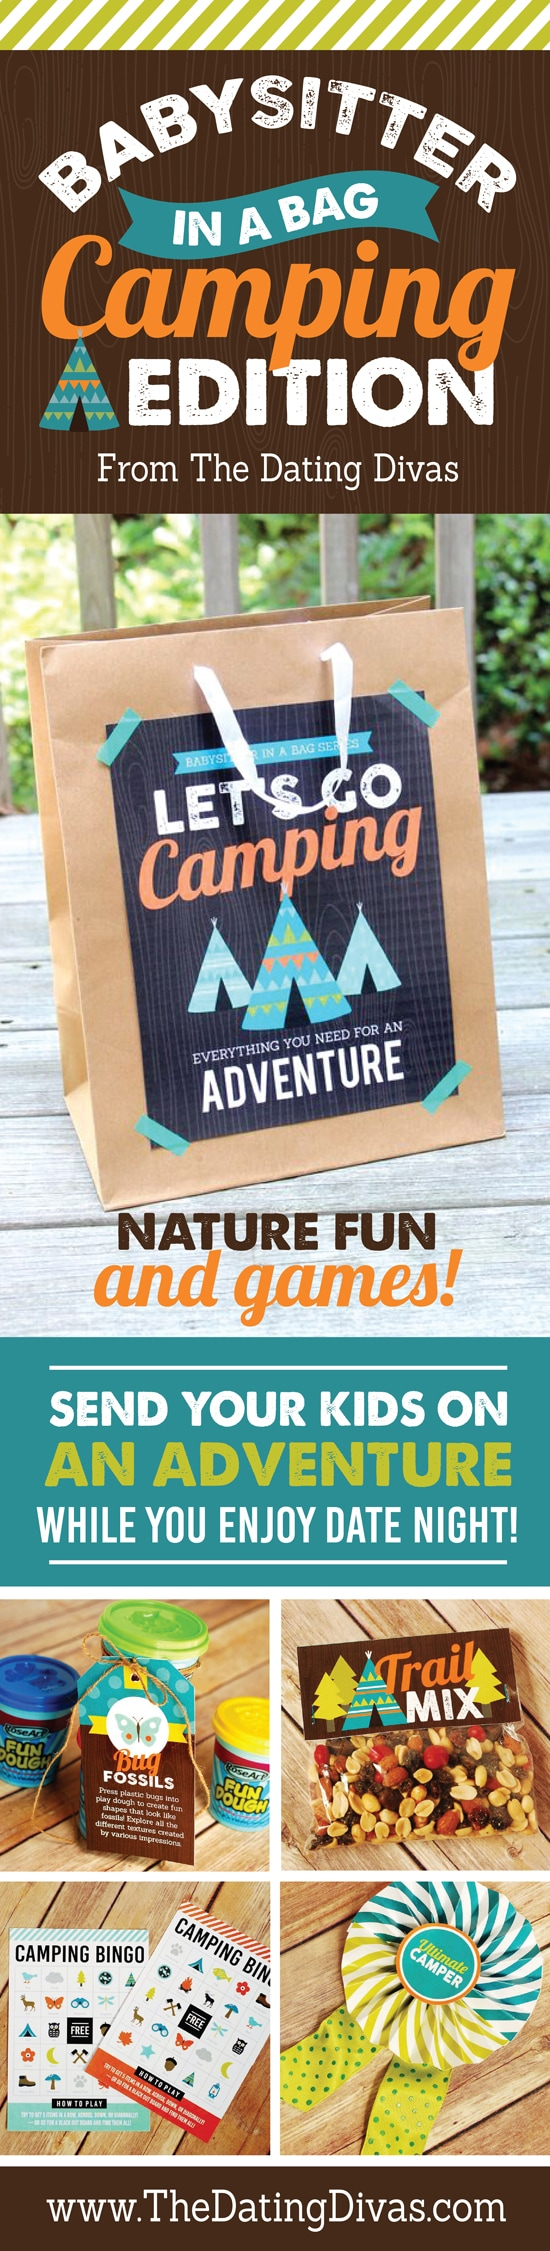 babysitter activities for kids camping edition babysitter in a bag camping edition